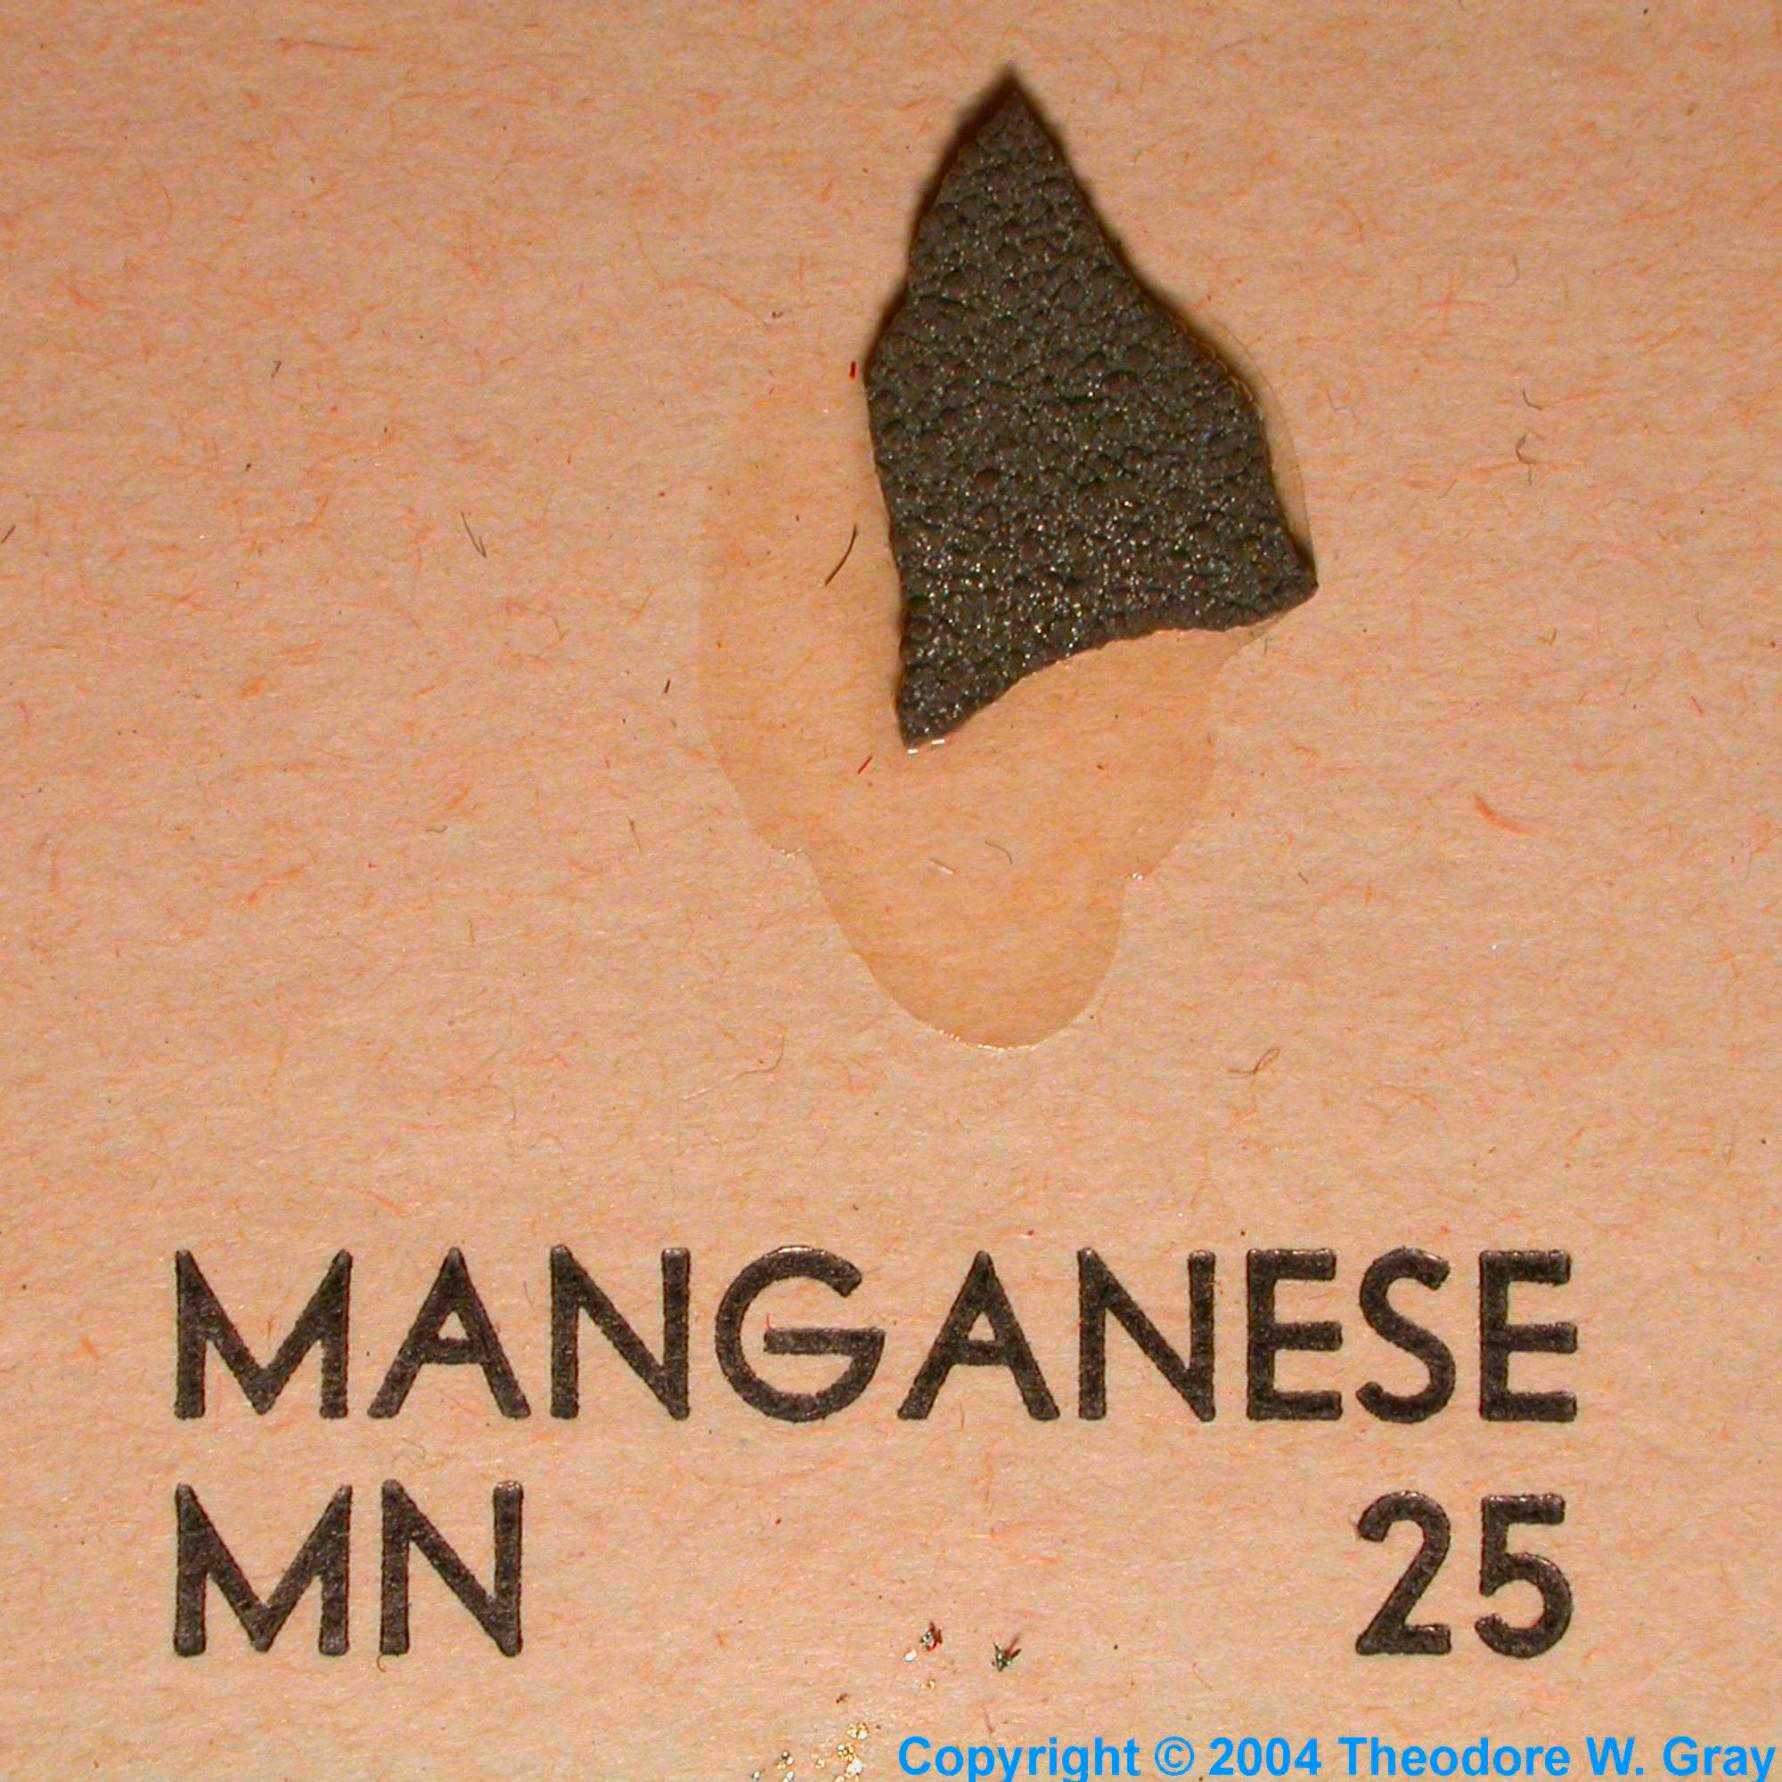 Facts pictures stories about the element manganese in the manganese mini element collection gamestrikefo Images